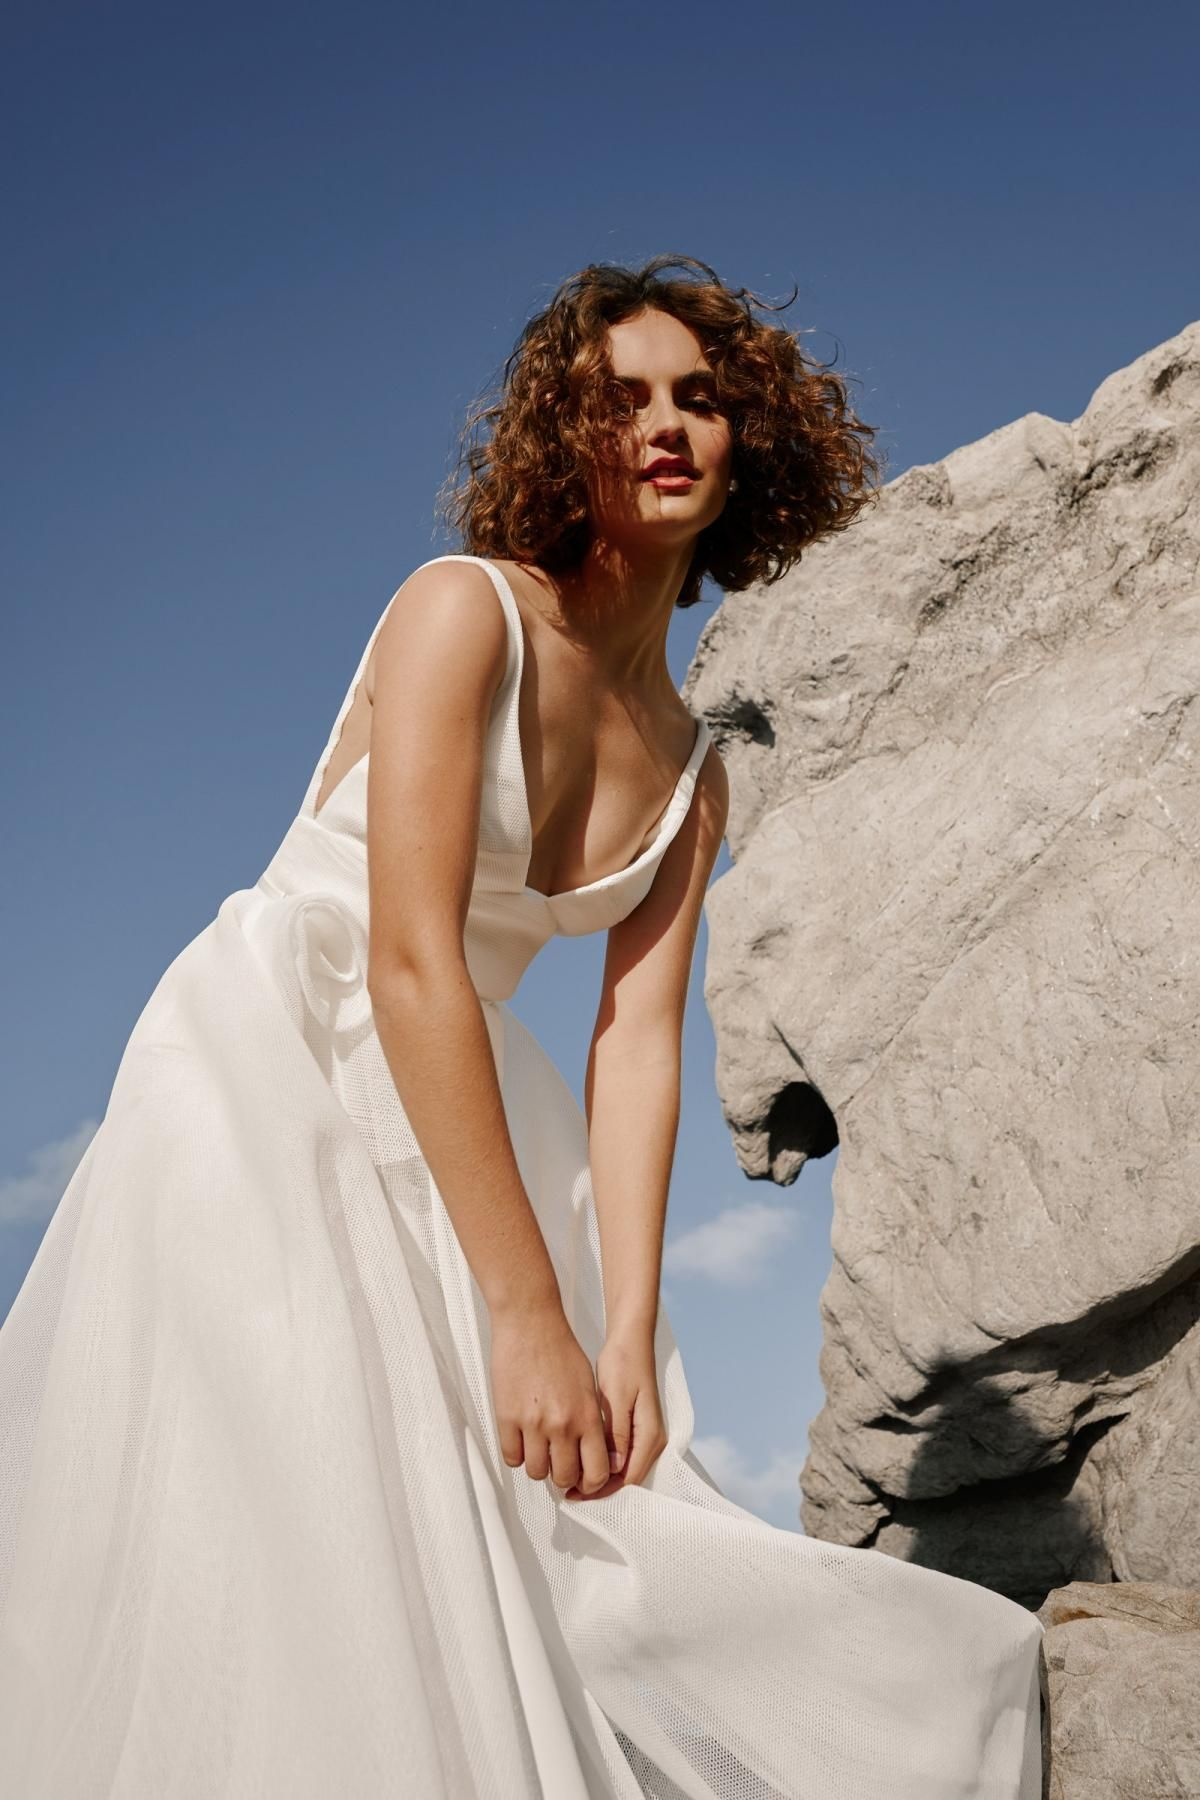 The Aisha gown by Karen Willis Holmes, v-neck wedding dress with rosette detail.